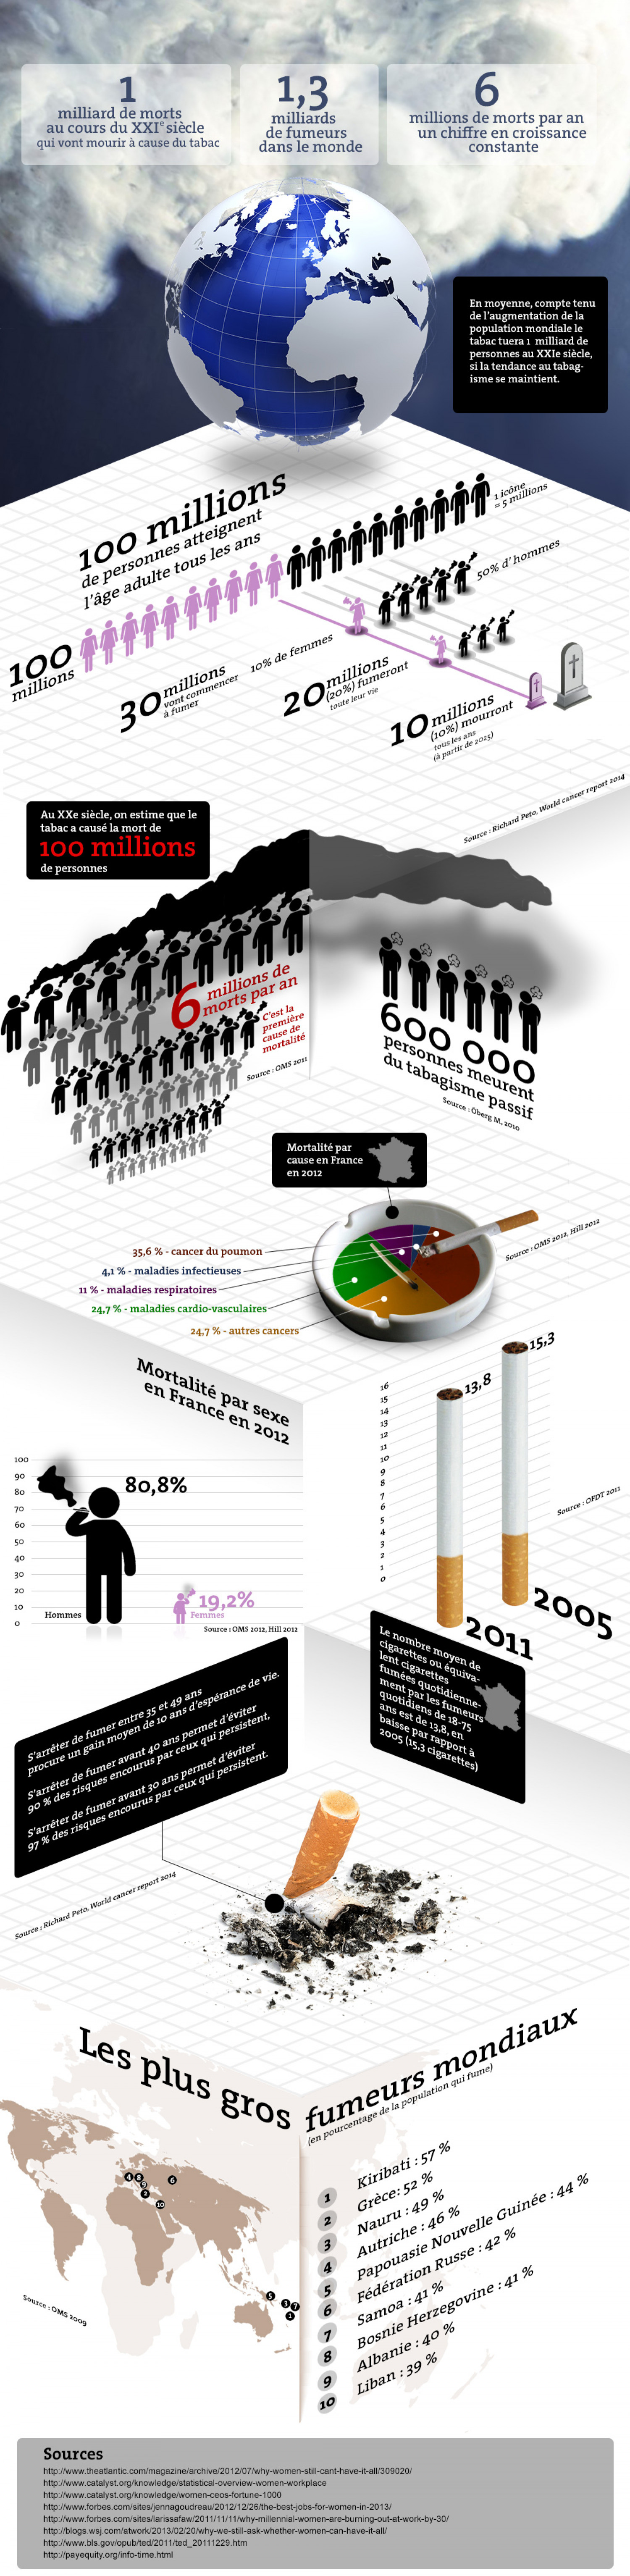 Cigarettes effects on the world Infographic